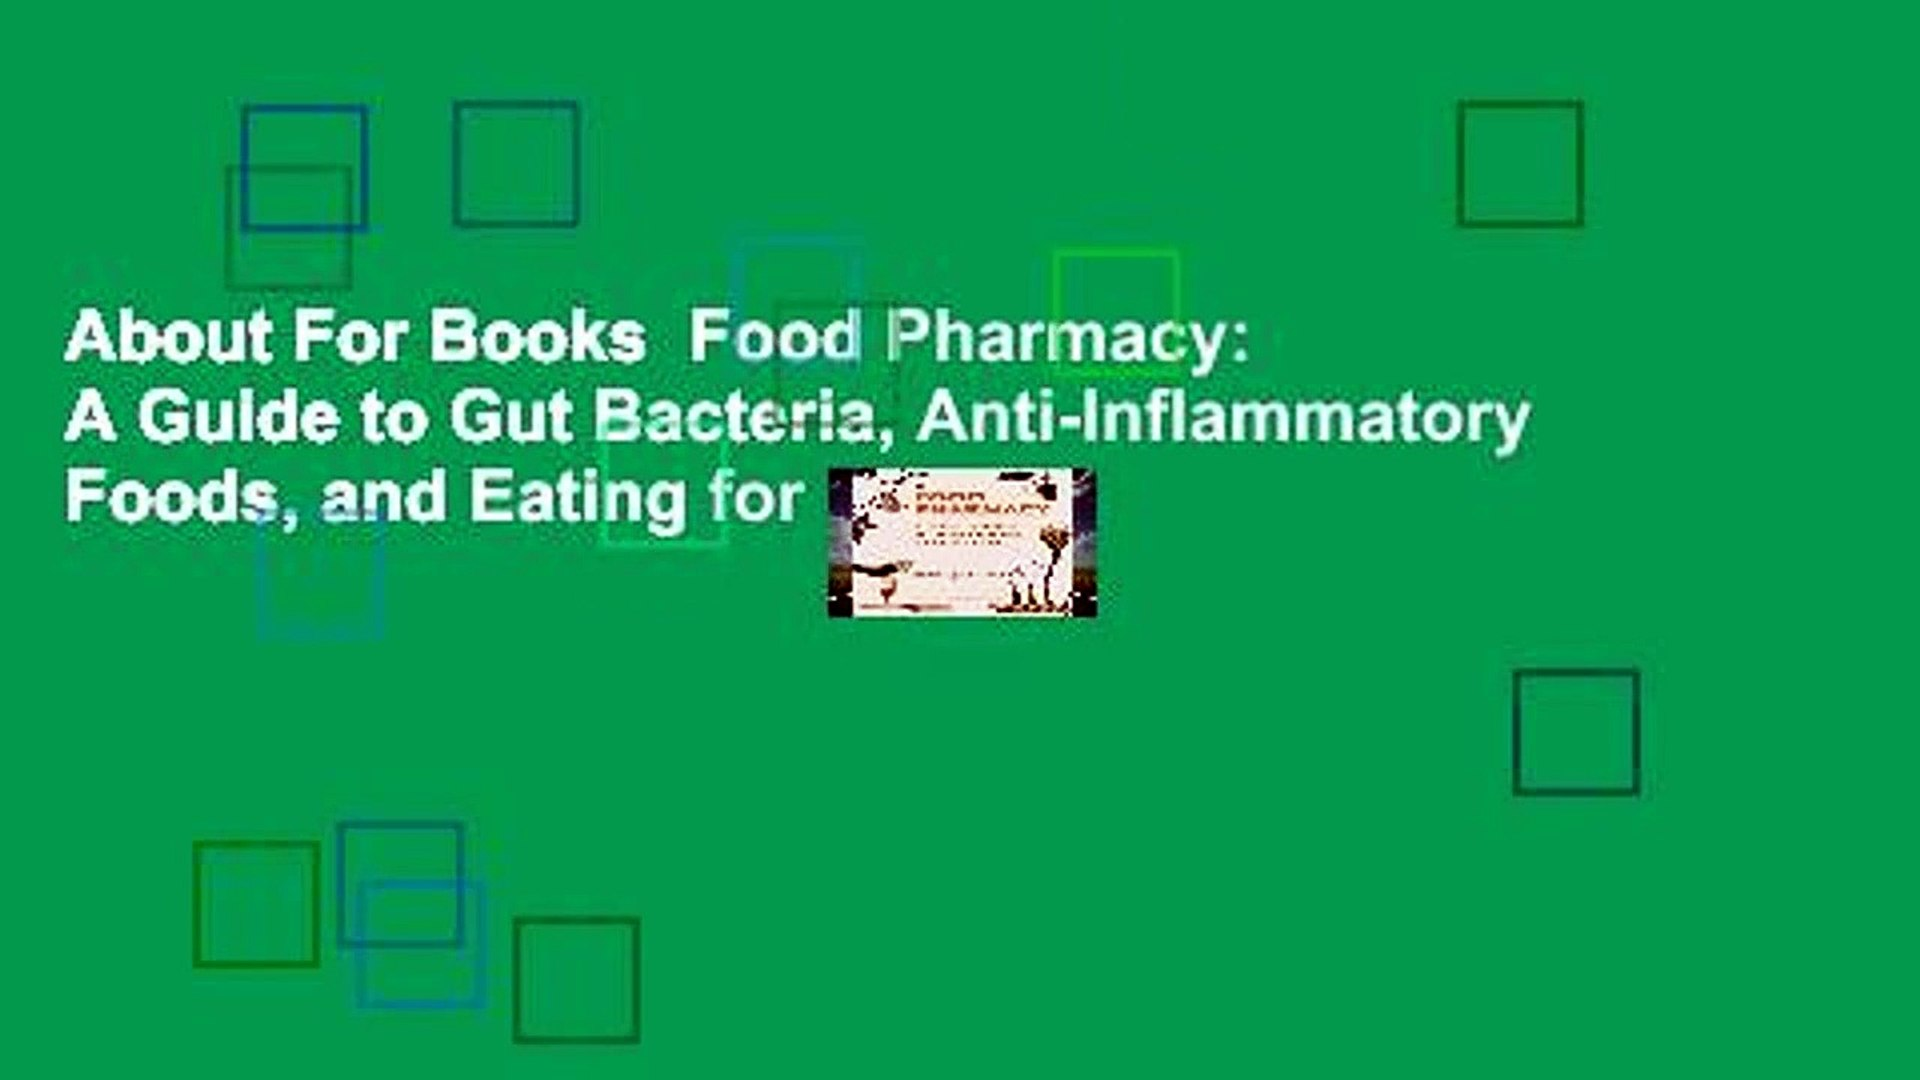 About For Books  Food Pharmacy: A Guide to Gut Bacteria, Anti-Inflammatory Foods, and Eating for